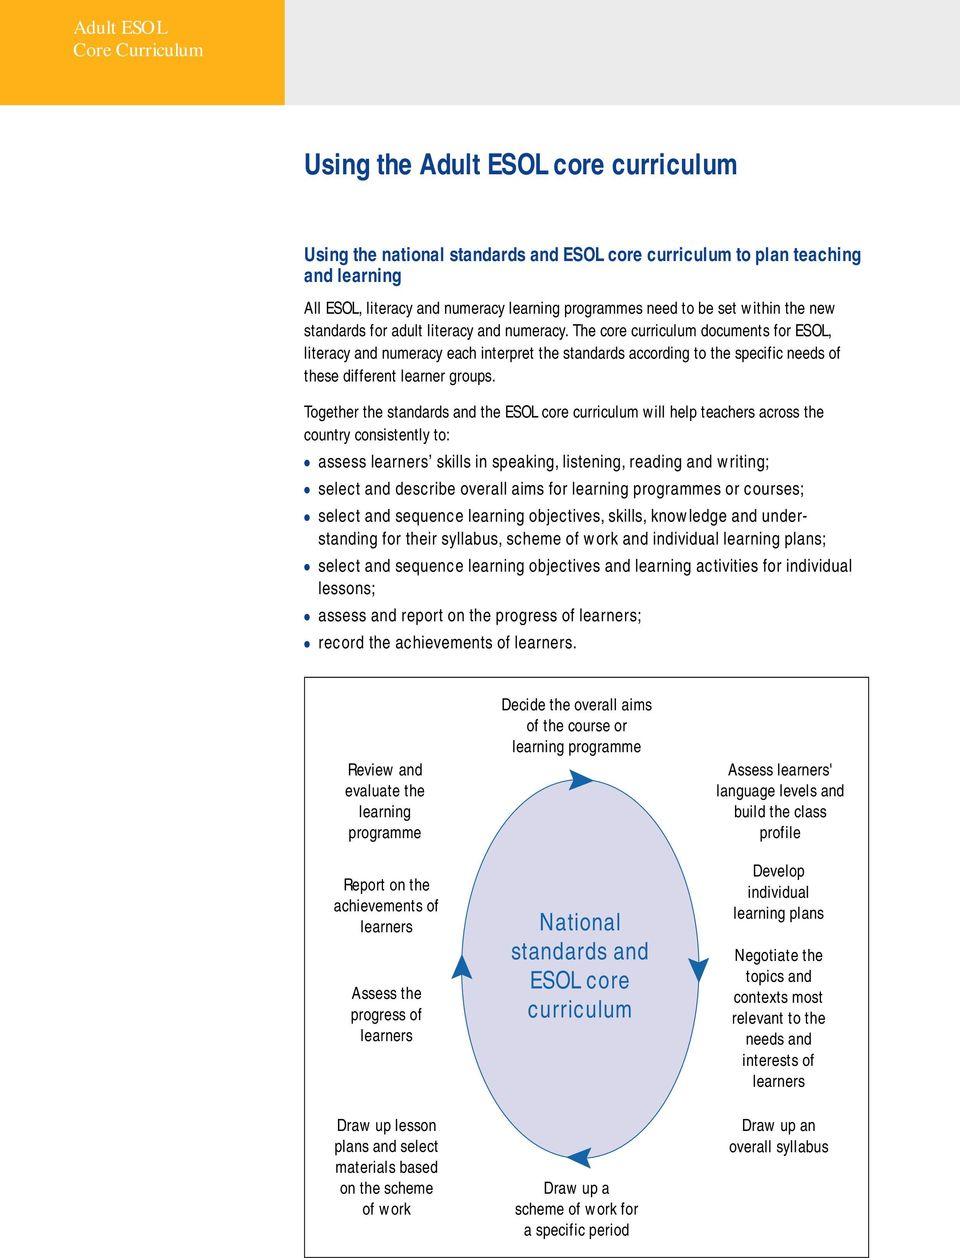 The core curriculum documents for ESOL, literacy and numeracy each  interpret the standards according to